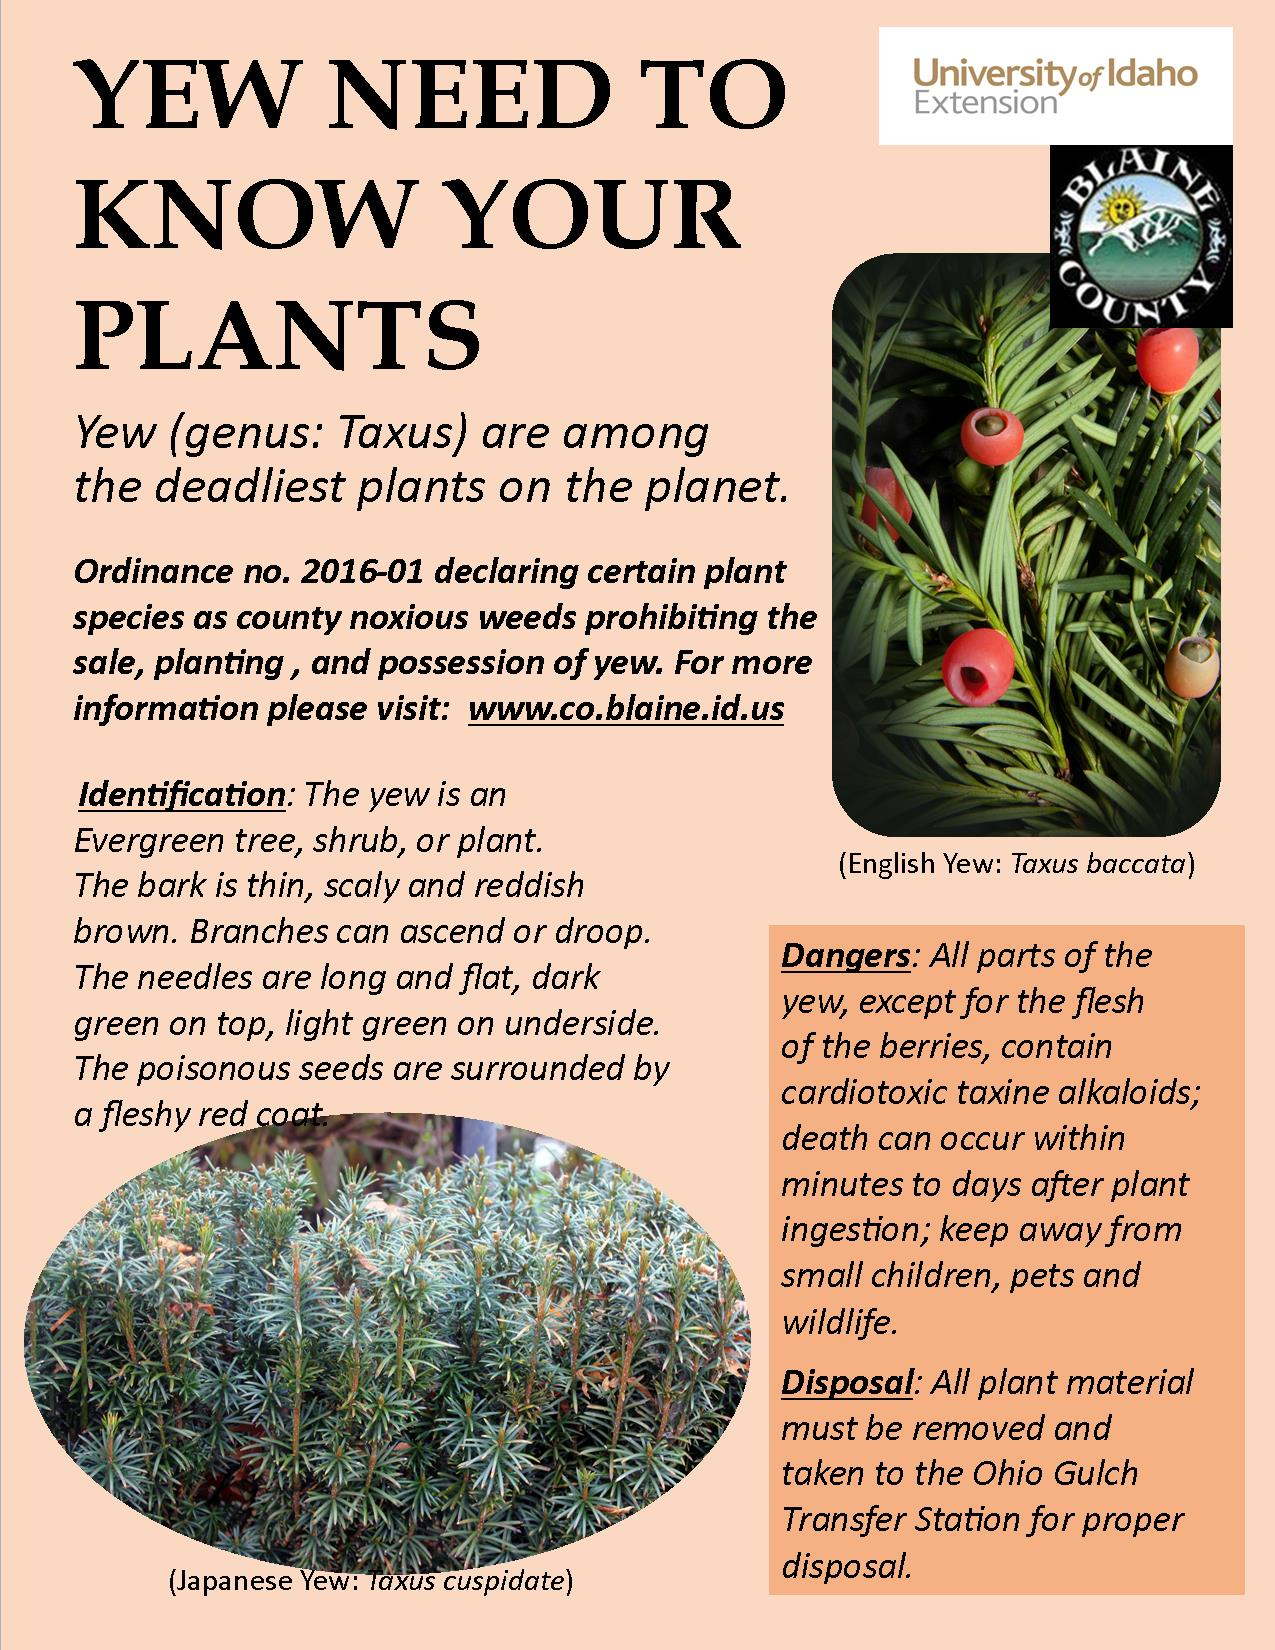 Yew Need to Know Your Plants brochure